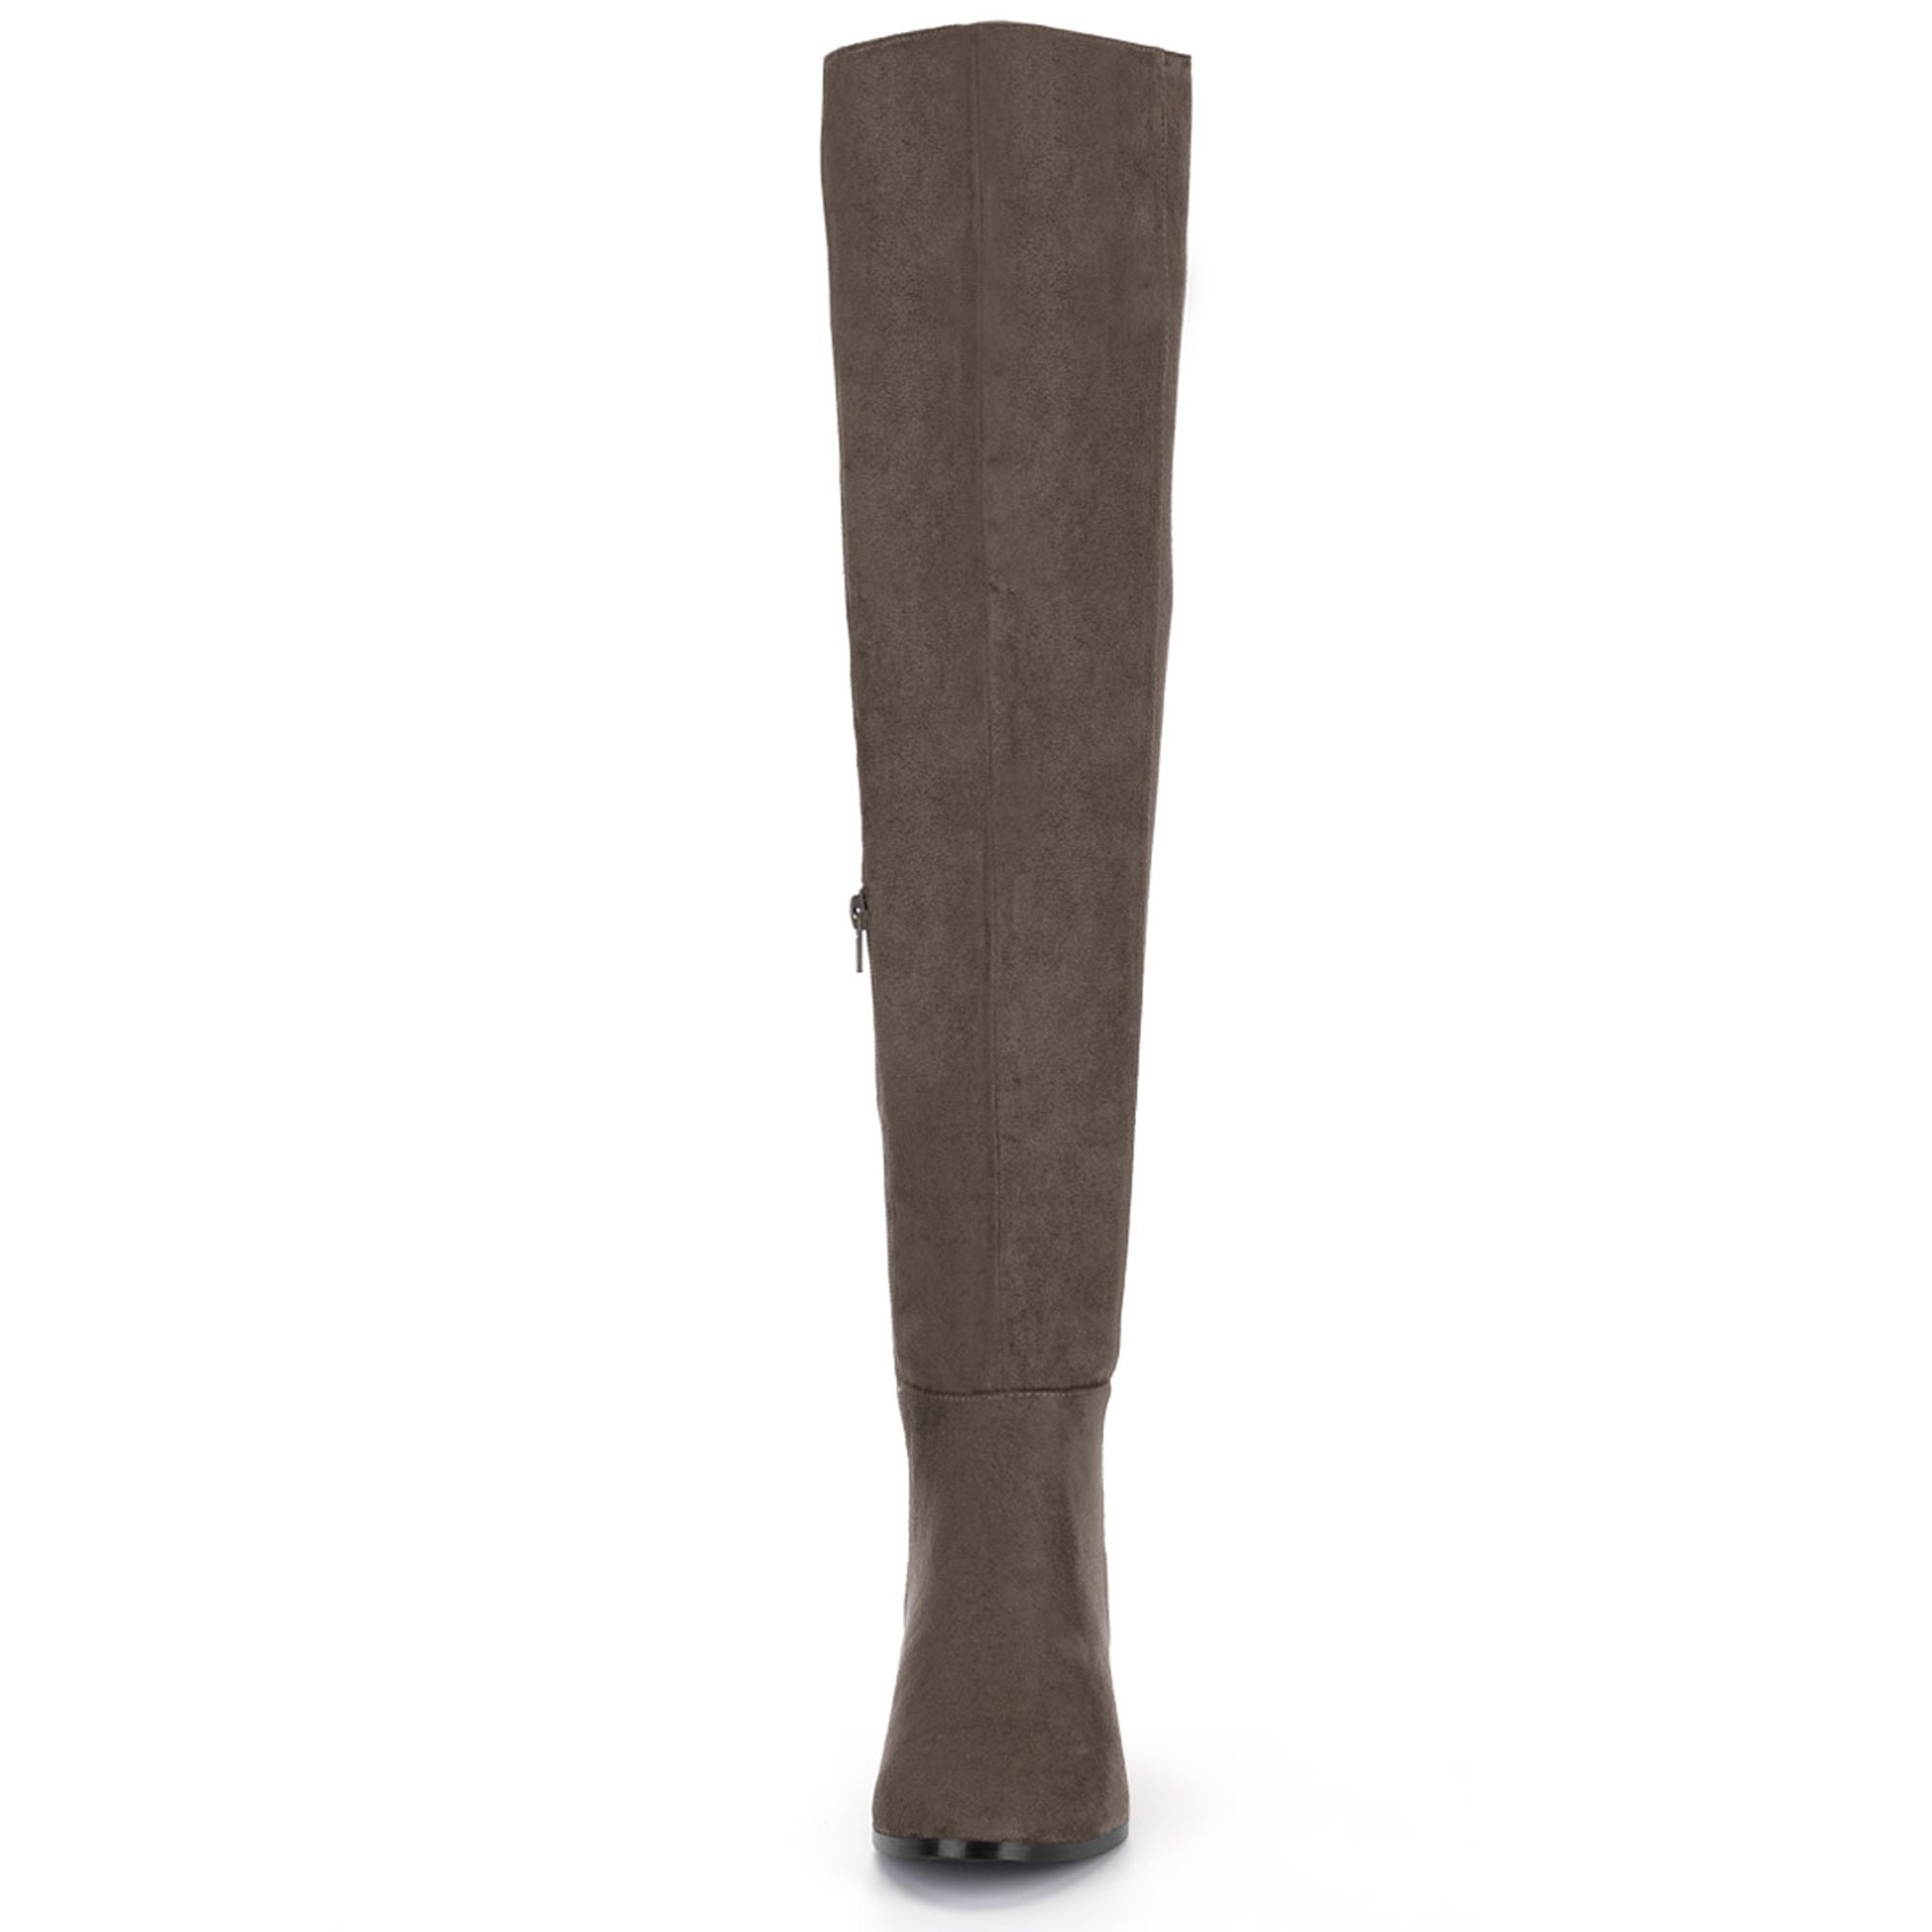 7b8e32640b9 Unique Bargains Women s Block Heel Round Toe Over the Knee Boots Dark Brown  (Size 7.5)